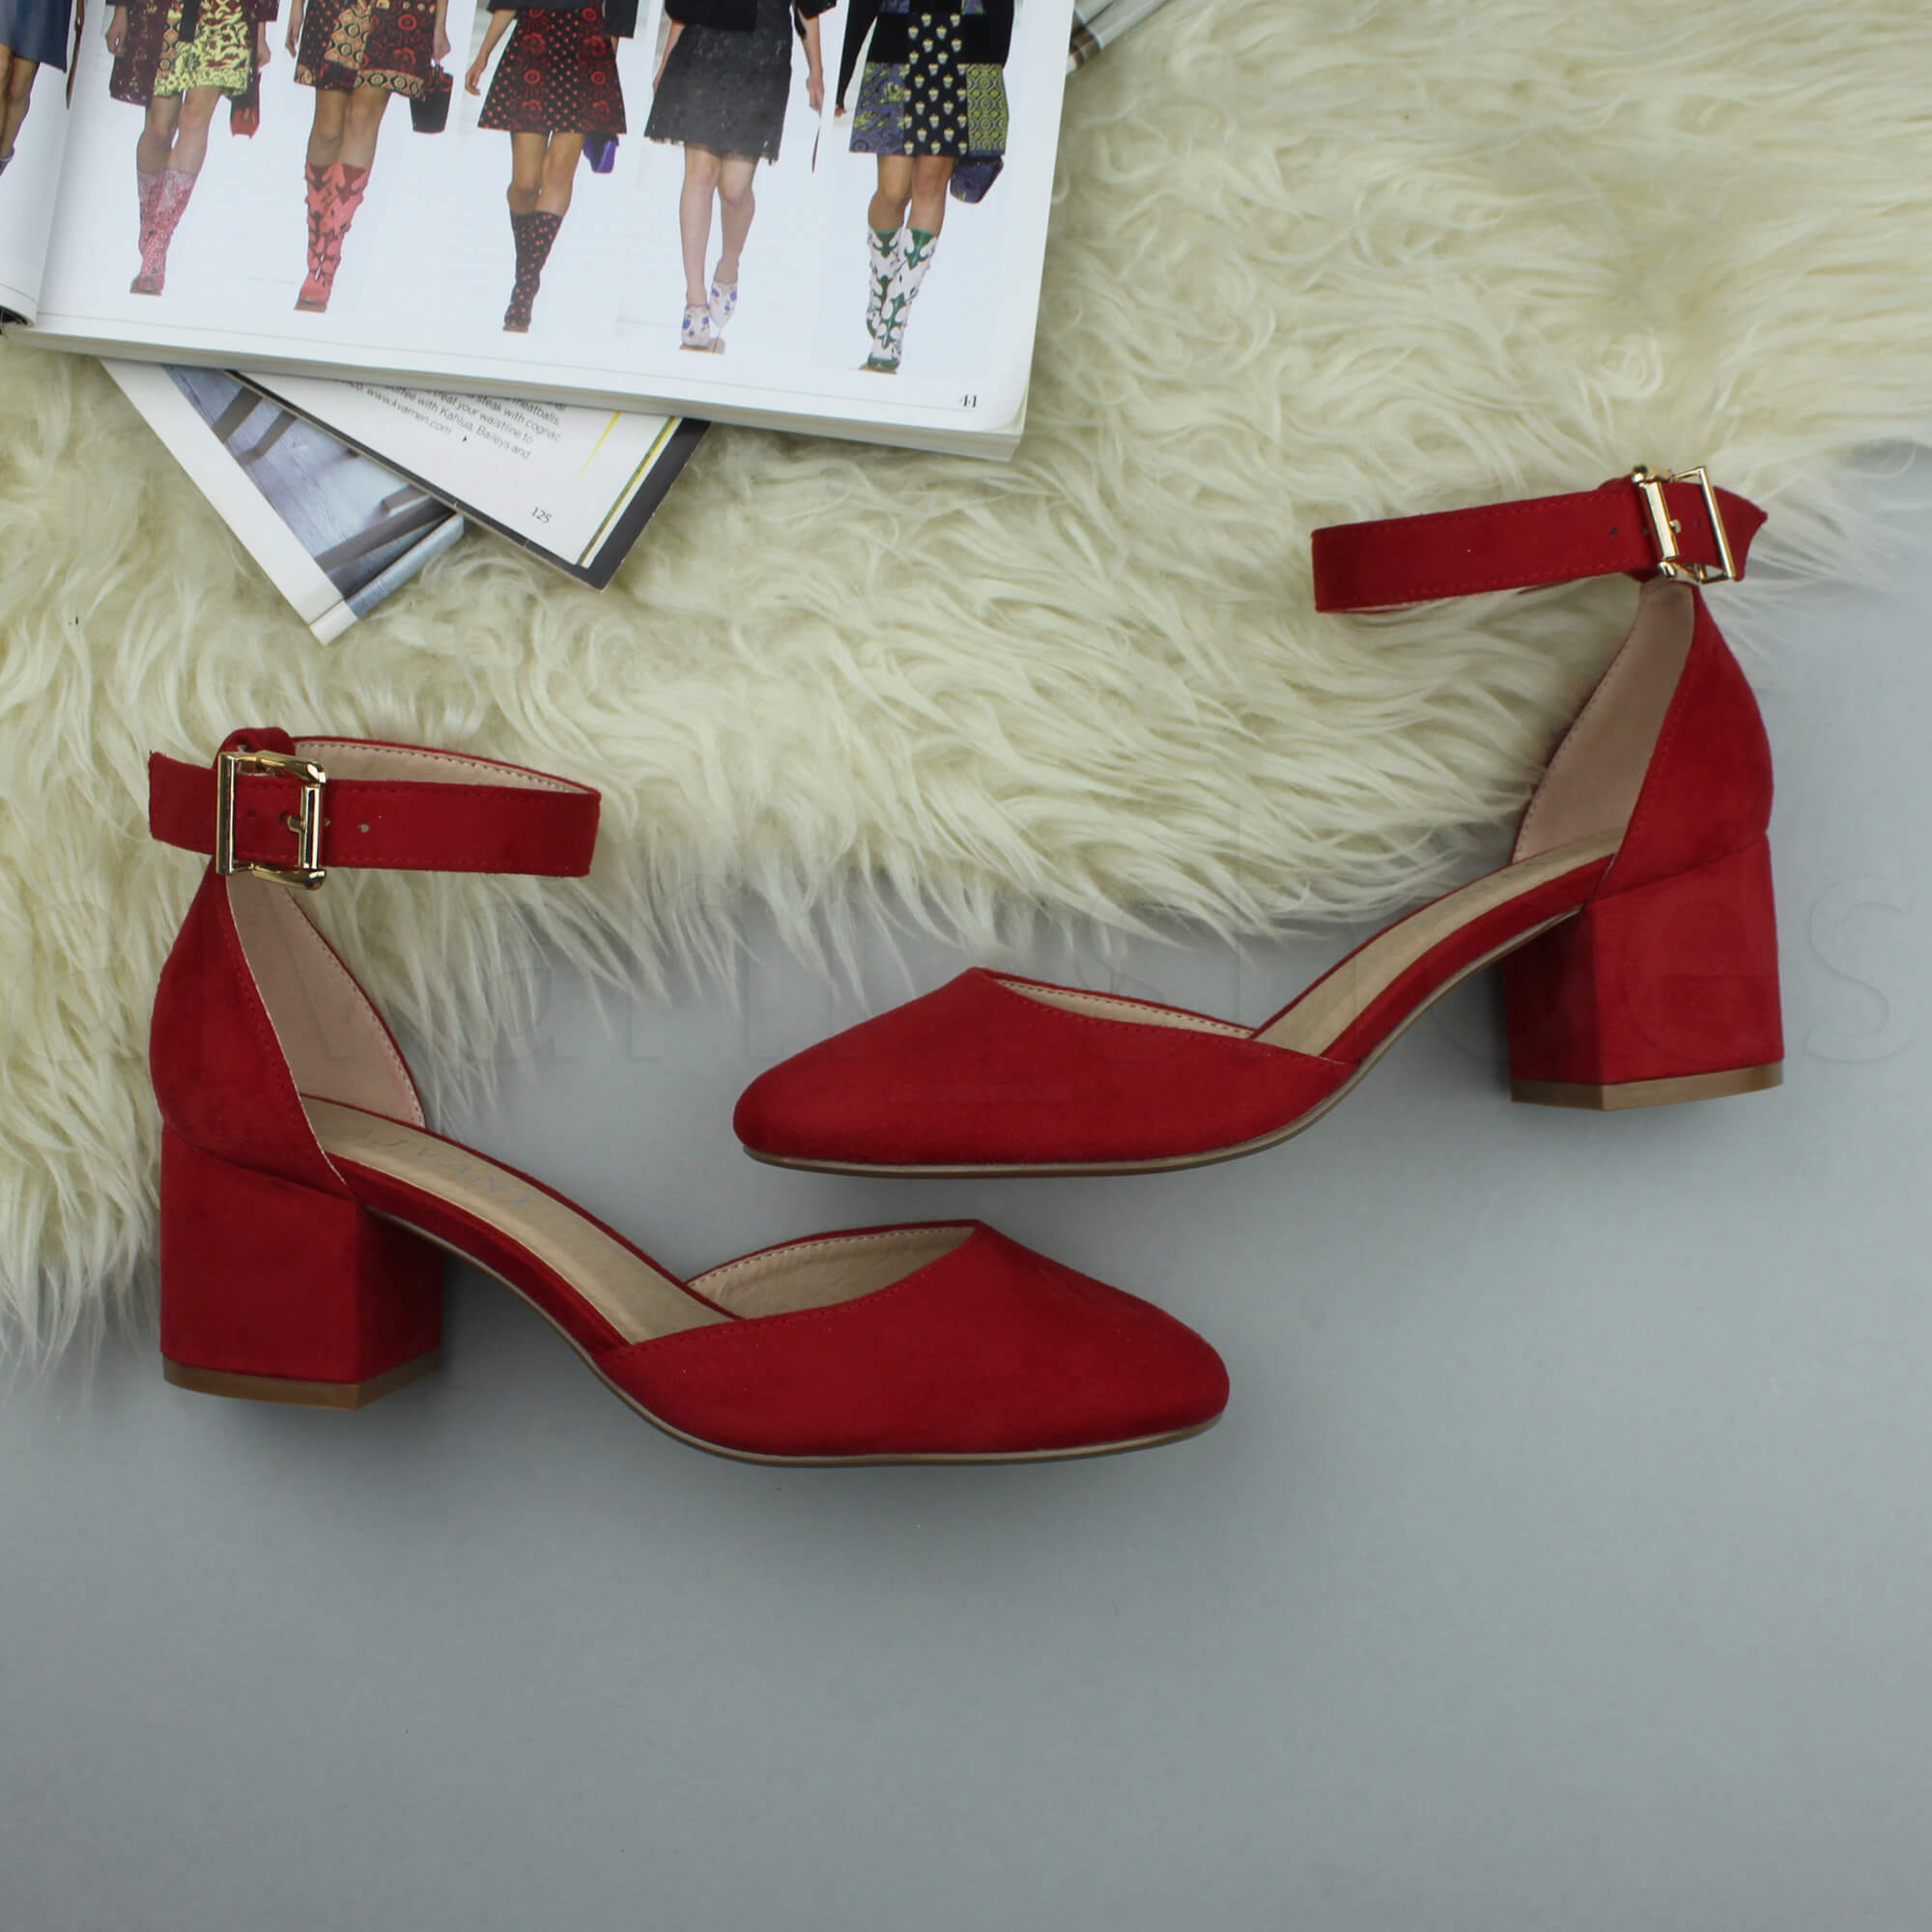 WOMENS-LADIES-LOW-MID-BLOCK-HEEL-ANKLE-STRAP-MARY-JANE-COURT-SHOES-SANDALS-SIZE thumbnail 141